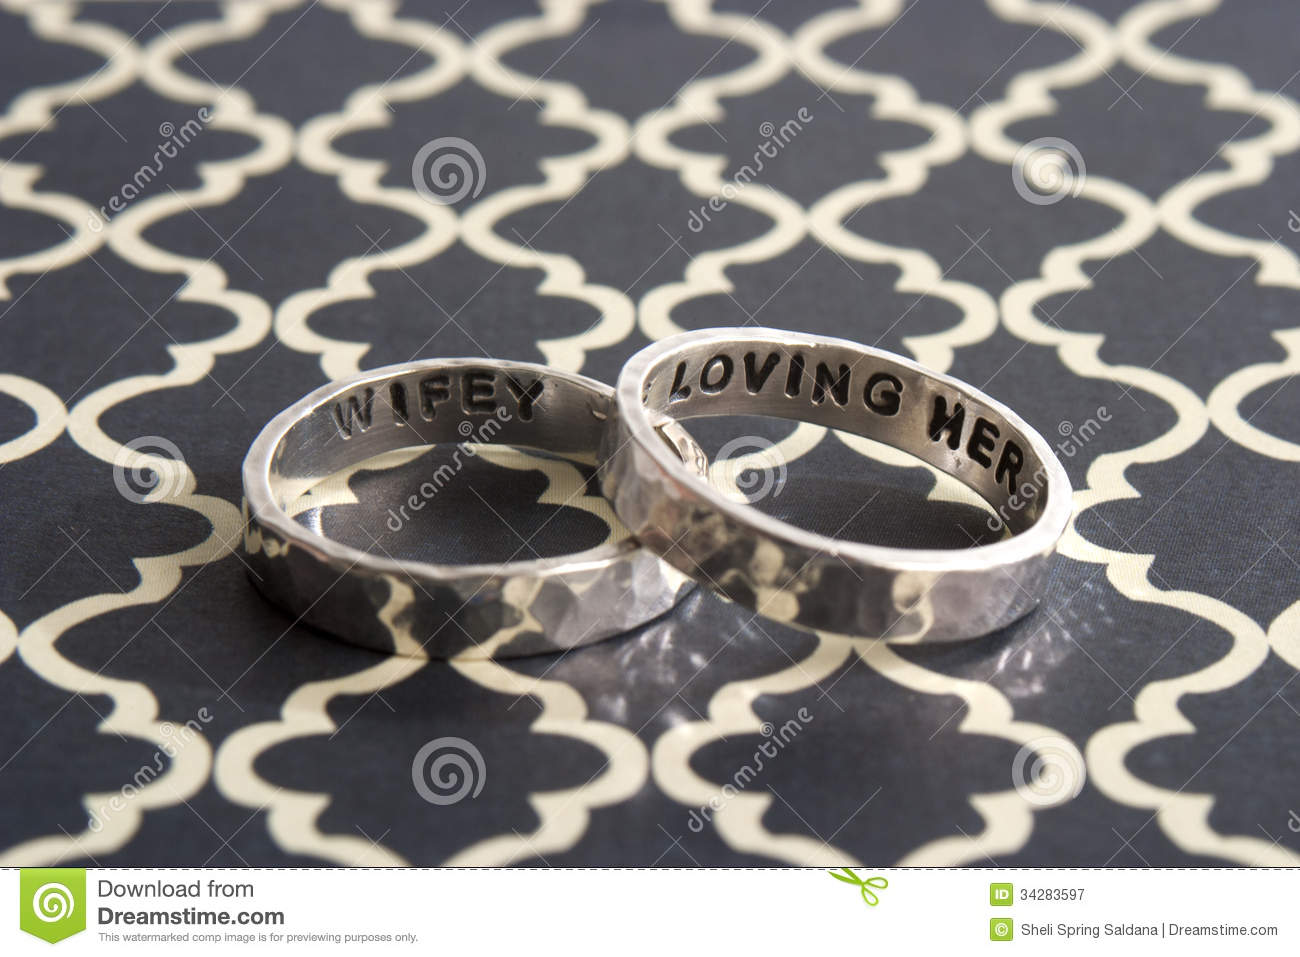 essay pieces silver Judas was one of the 12 disciples closest to jesus judas offered to betray jesus  to the religious authorities they agreed to pay him 30 pieces of silver for doing.